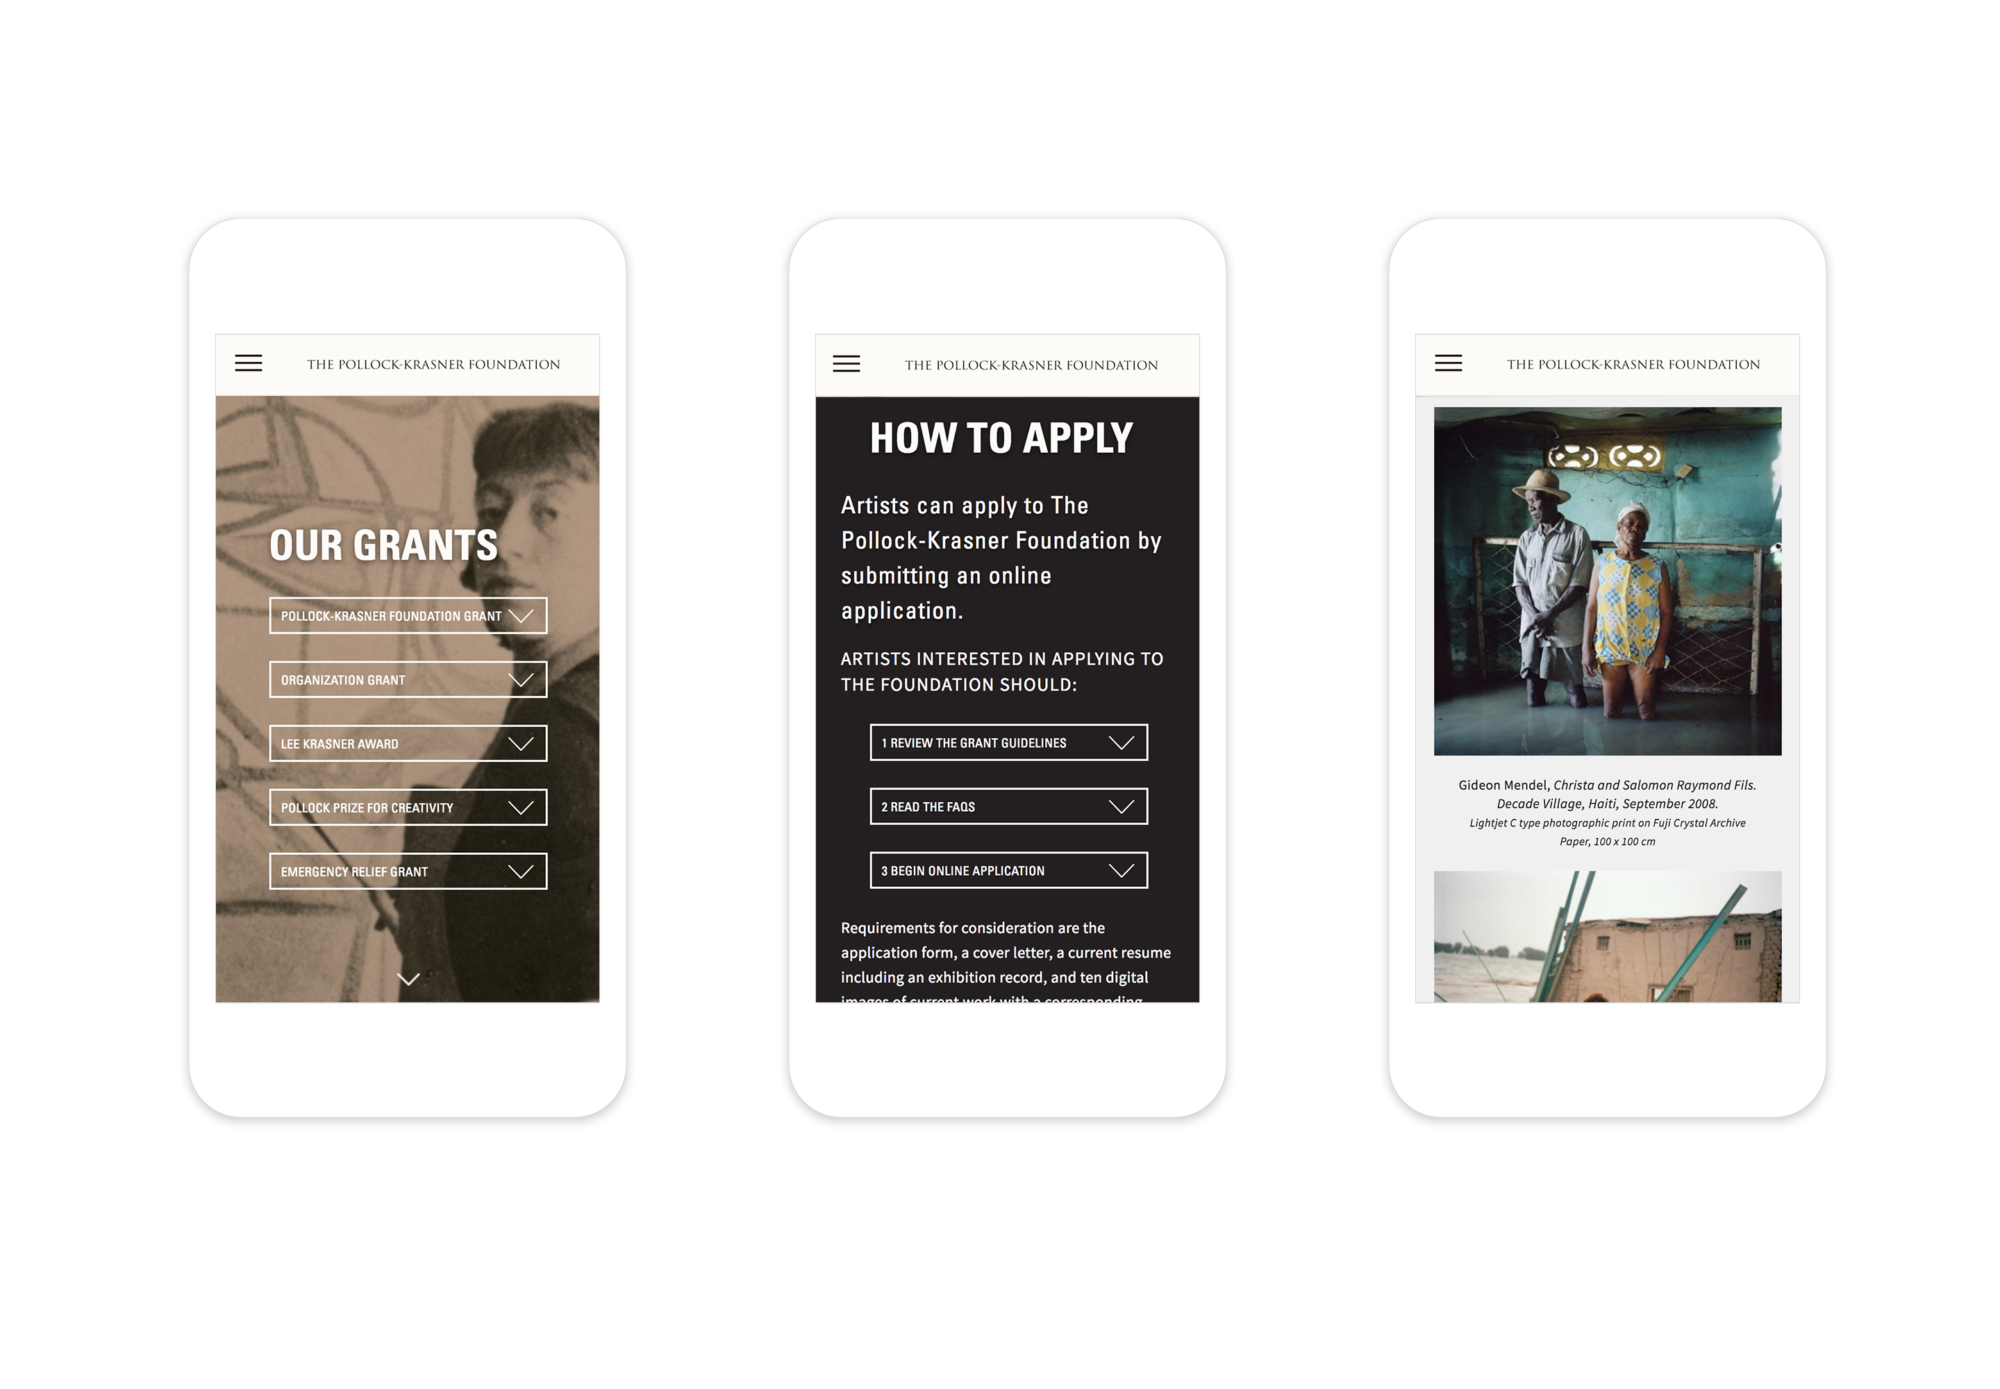 3 responsive mobile webpages: the Our Grants page, the How to Apply page, and a page featuring work from current grant recipients